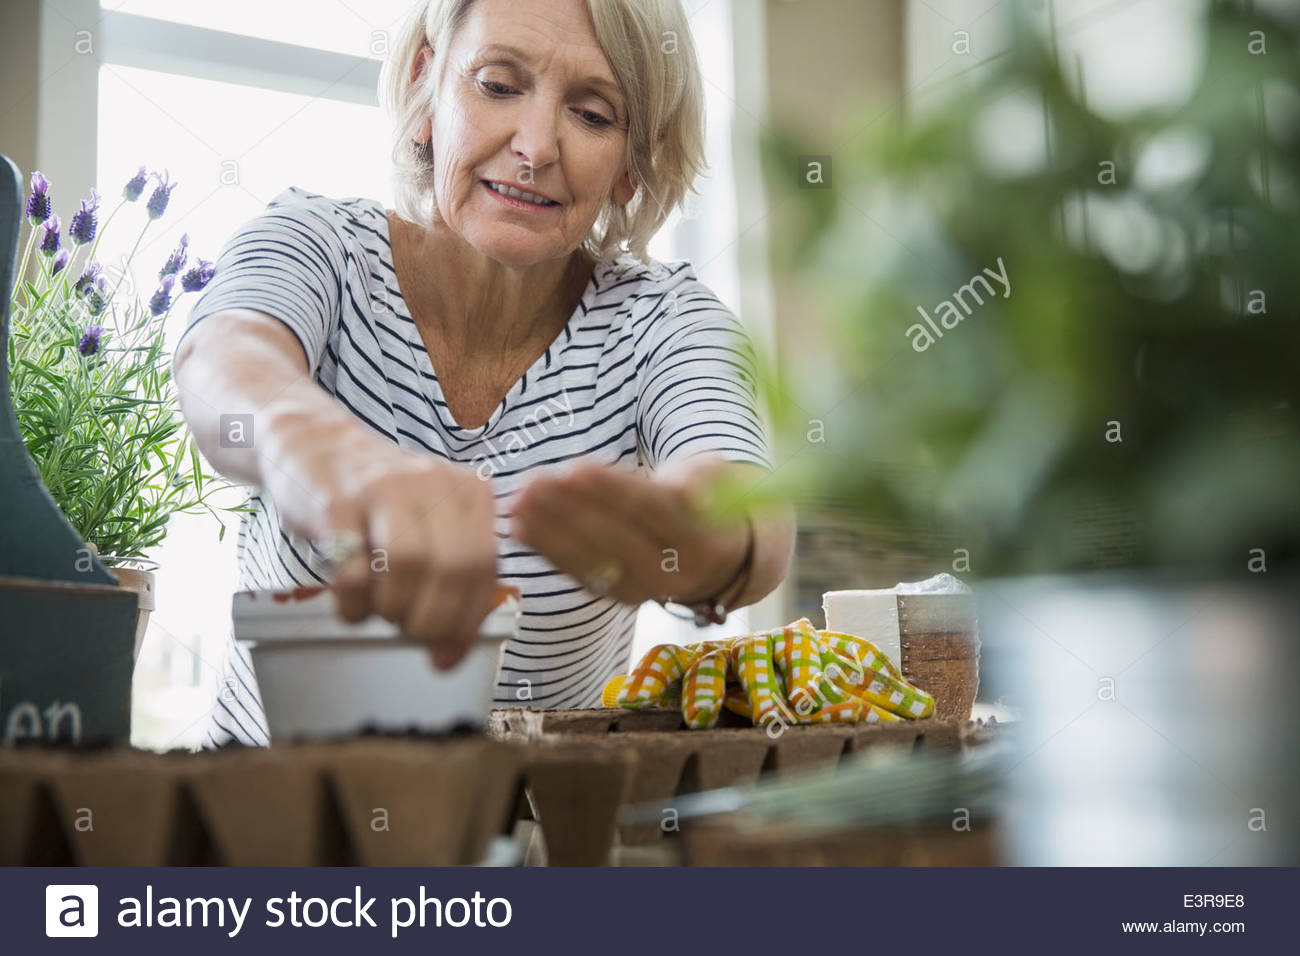 Woman planting seeds - Stock Image